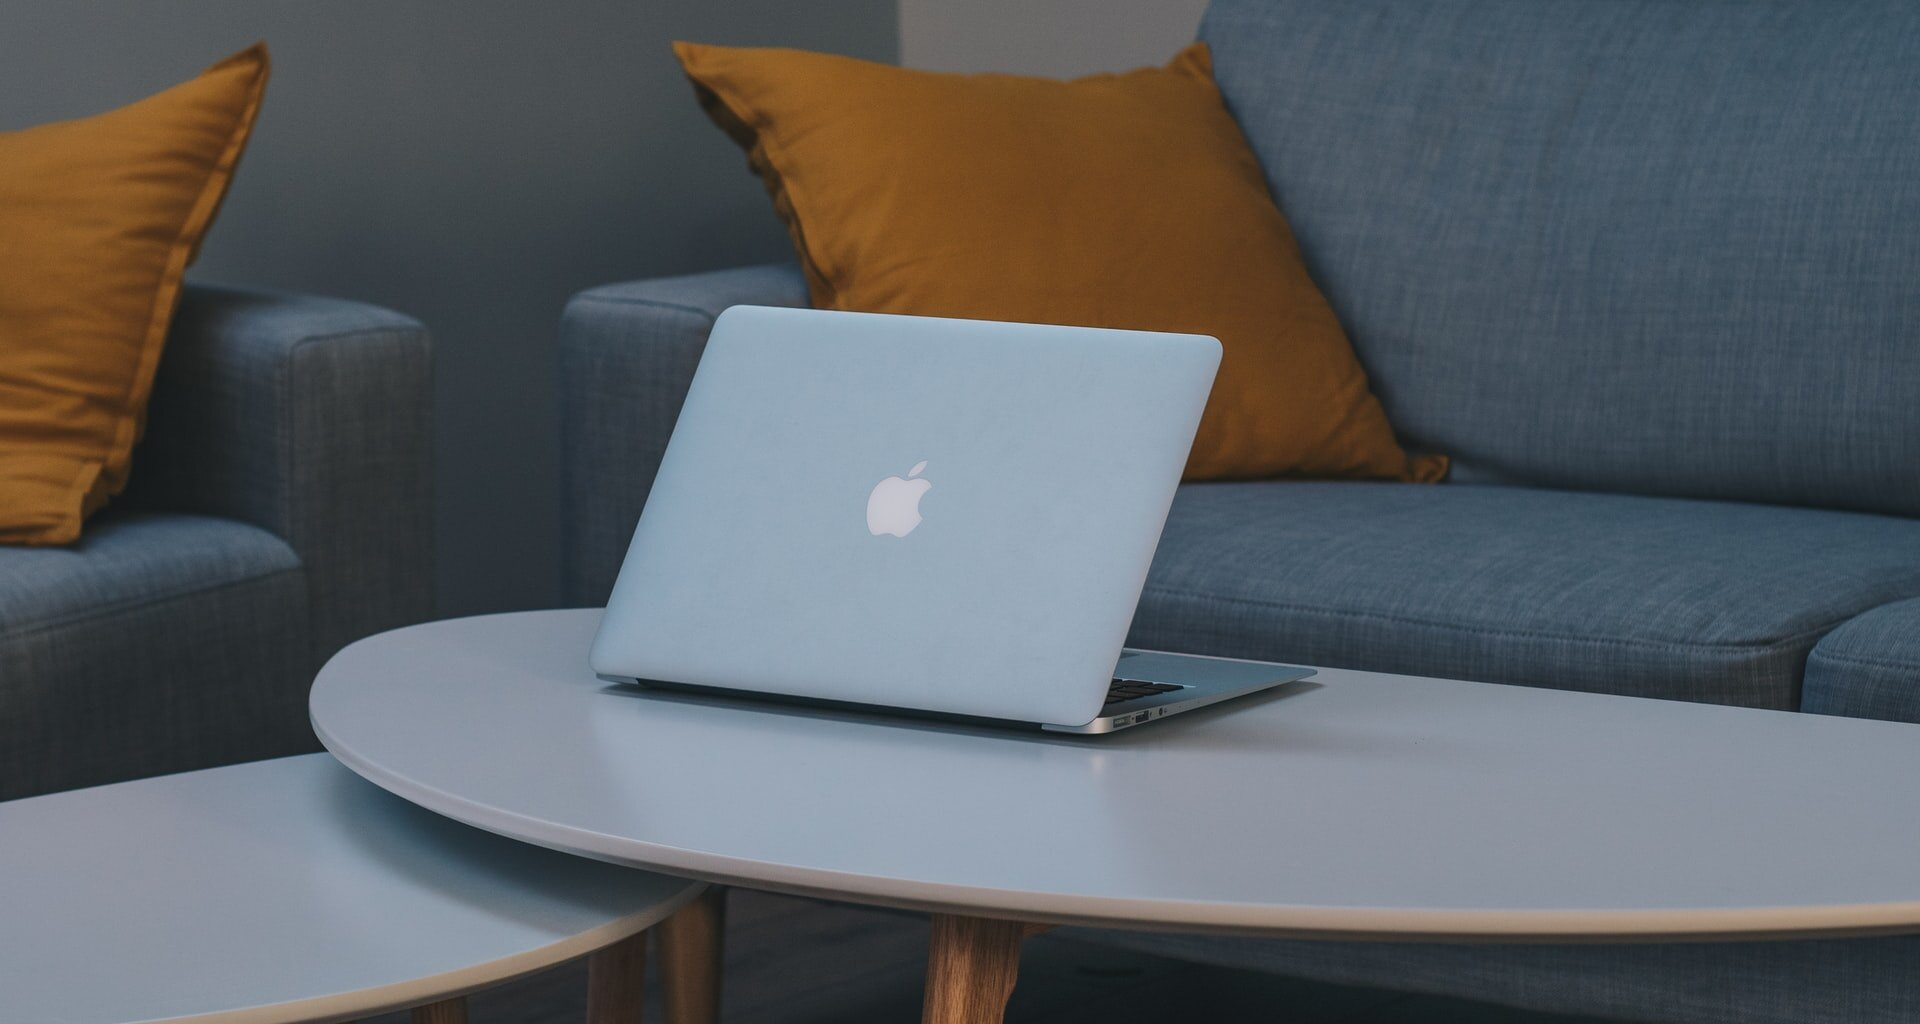 Можно ли майнить криптовалюту на MacBook Air с процессором Apple M1